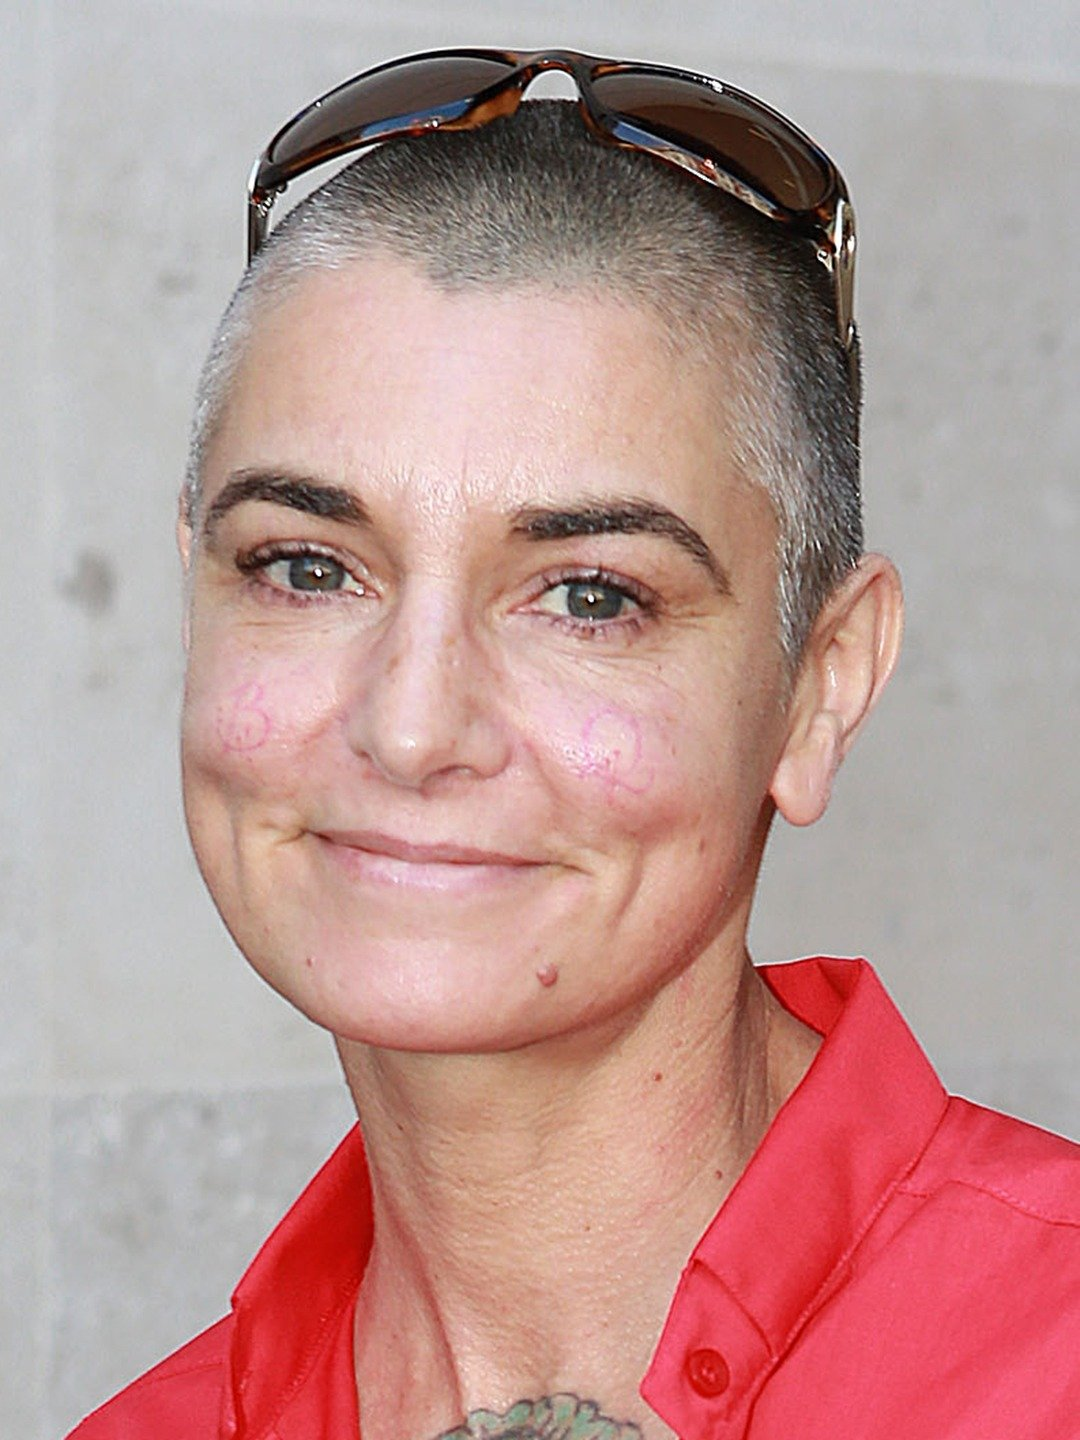 Sinead O'Connor at BBC Radio Studios, London, Britain - 29 Jul 2014